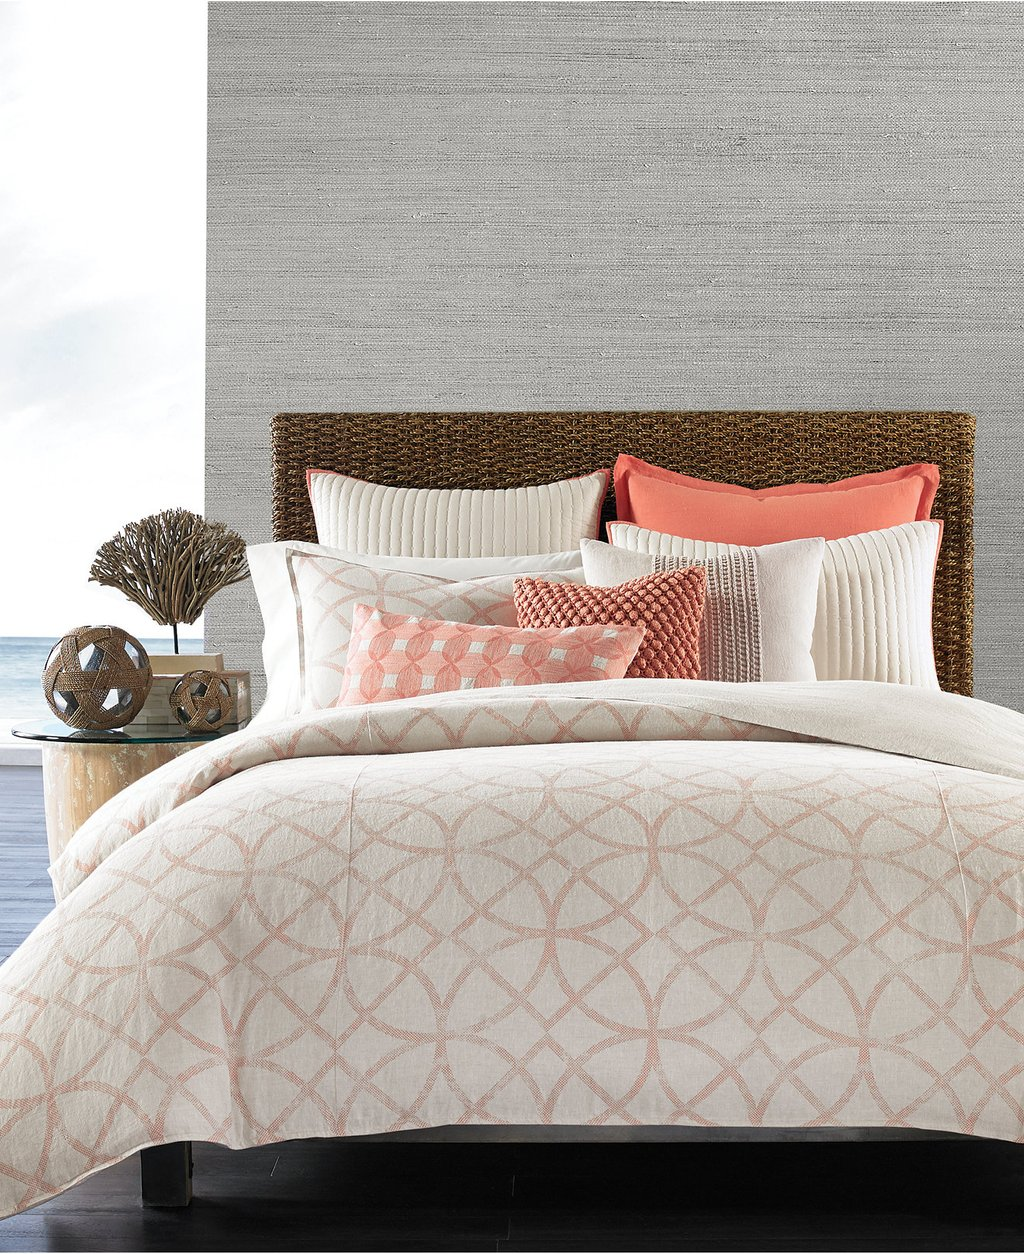 Image of: Macy Bedding Full Size Beddingmacy Bedding Stunning Top Coral and Turquoise Bedding Guide!